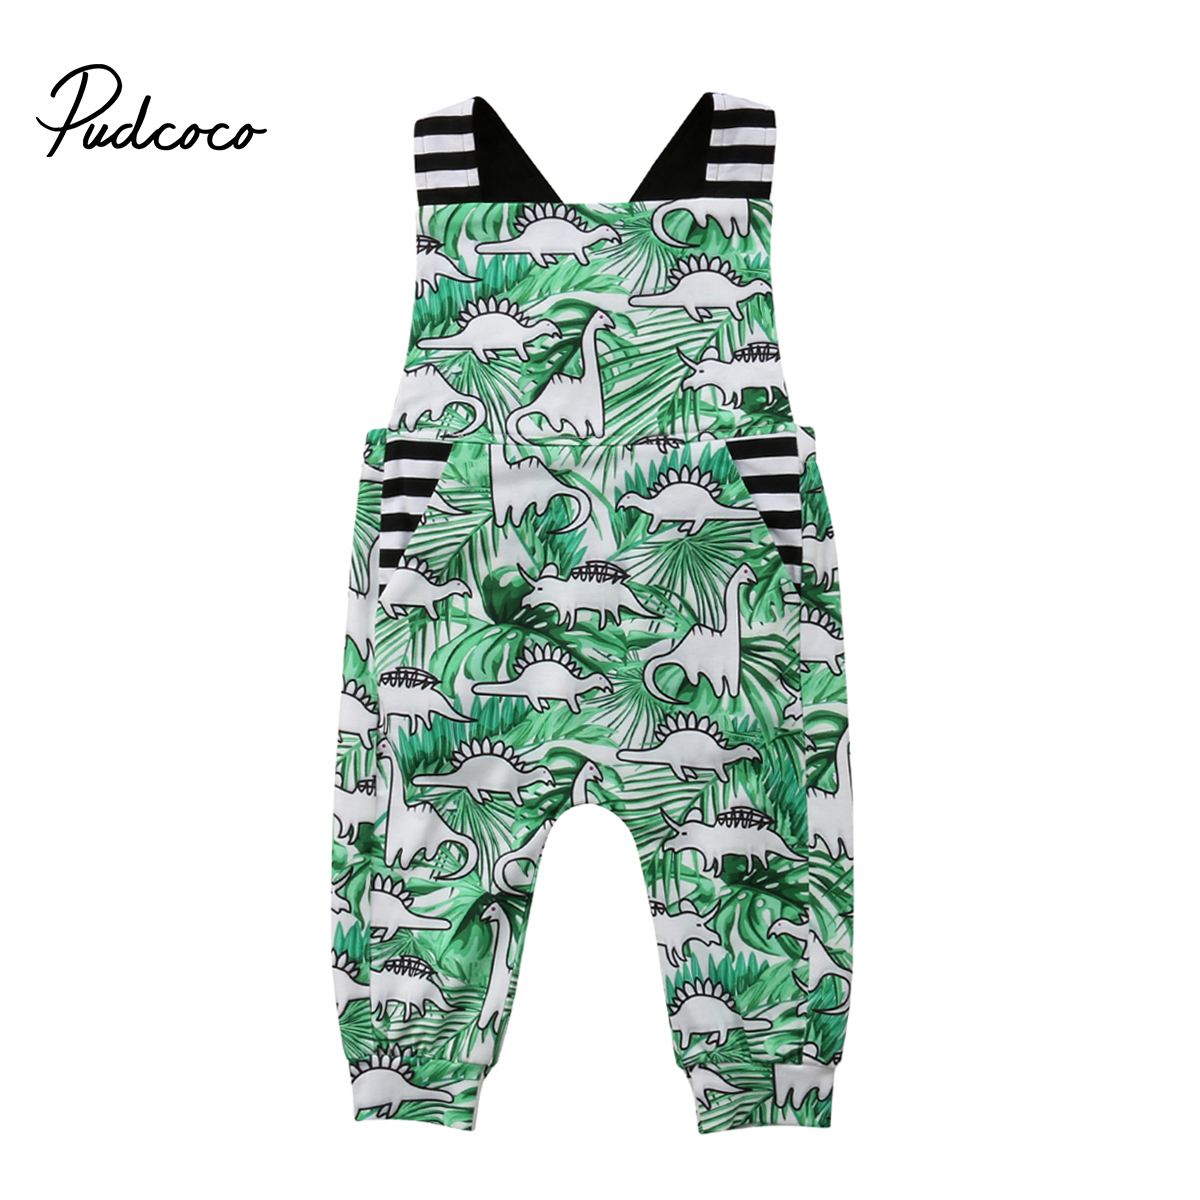 Pudcoco 2018 Toddler Newborn Baby Boy Girl Romper Dinosaur Print Sleeveless Braces Jumpsuit Sunsuit Summer Clothes Outfits 6-36M